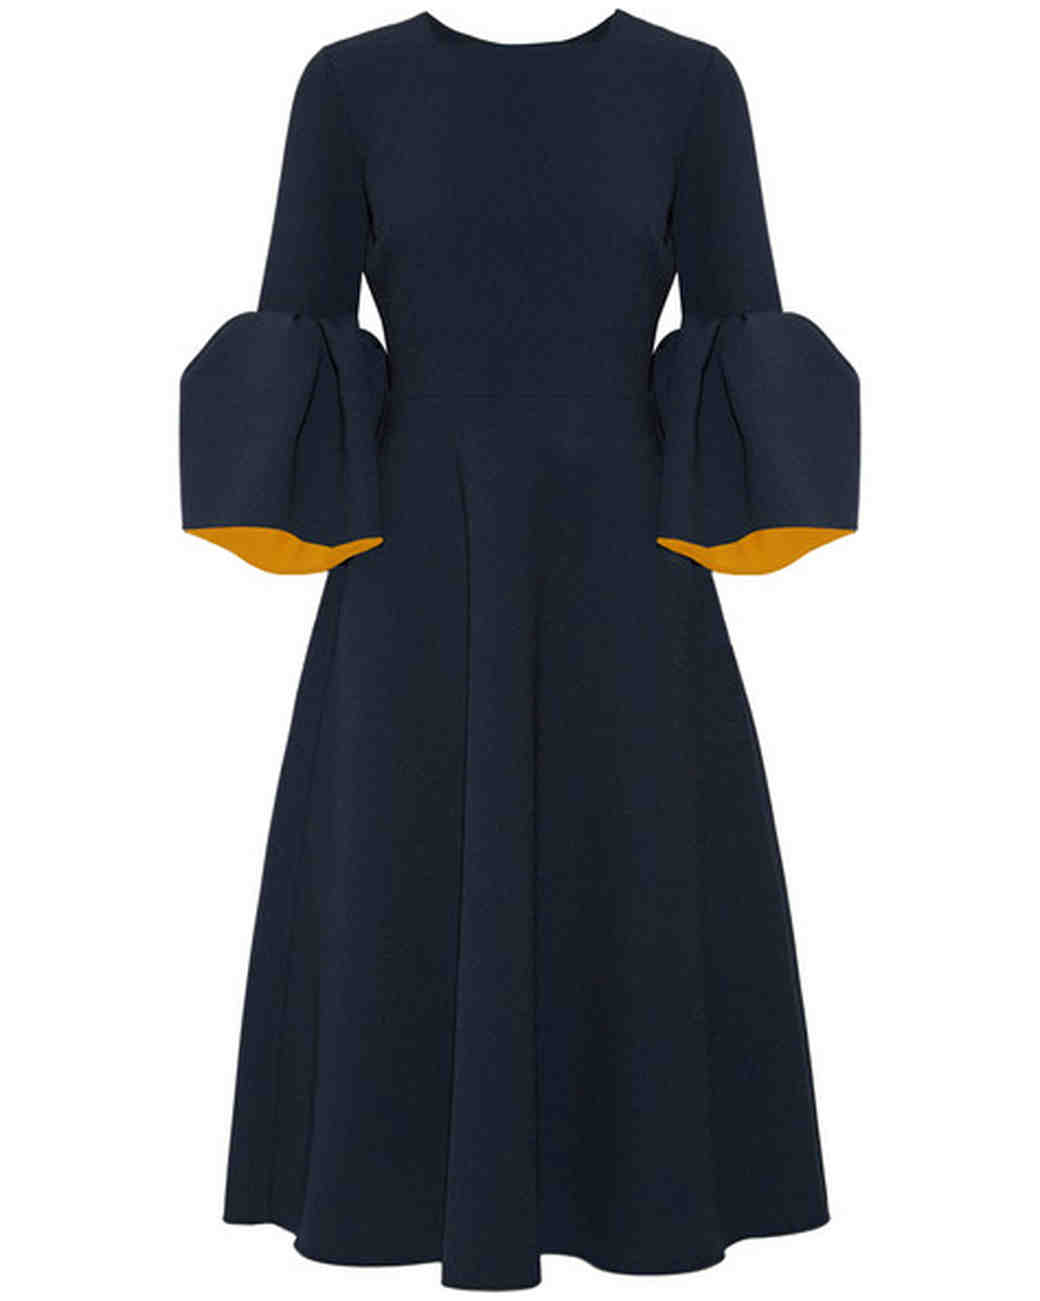 Navy Dress with Bell Sleeves